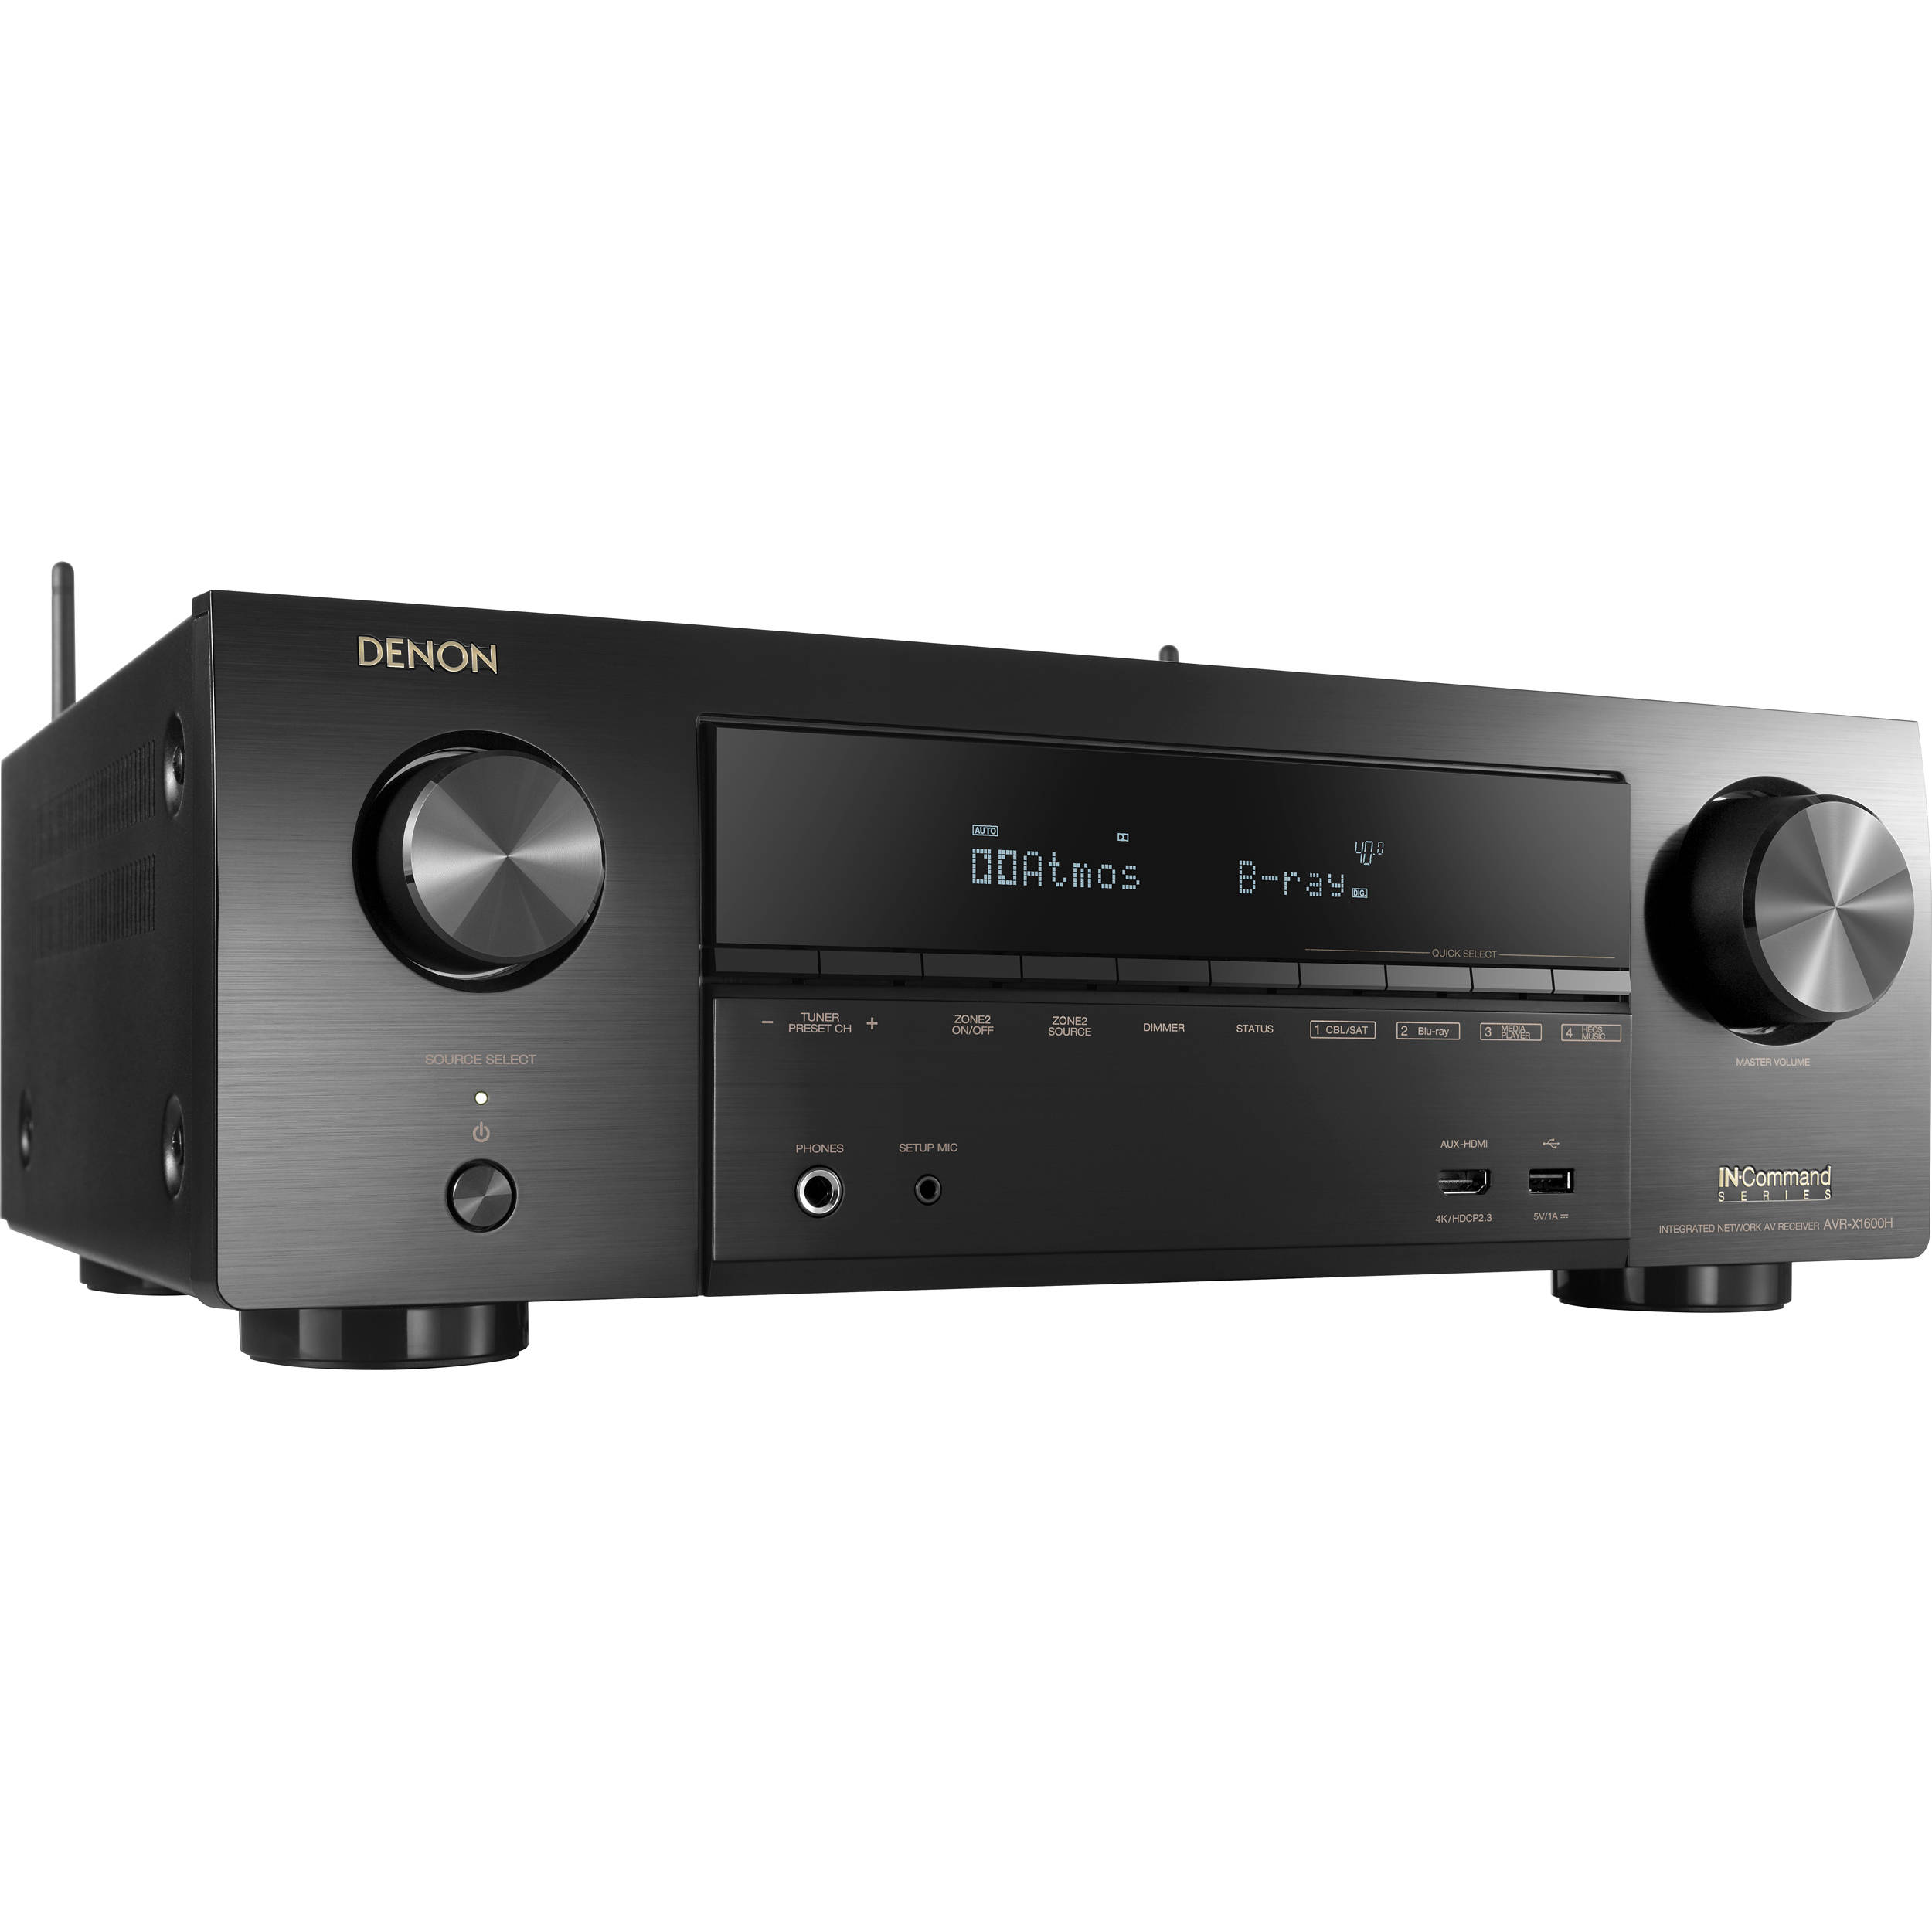 Denon AVR-X1600H 7 2-Channel Network A/V Receiver